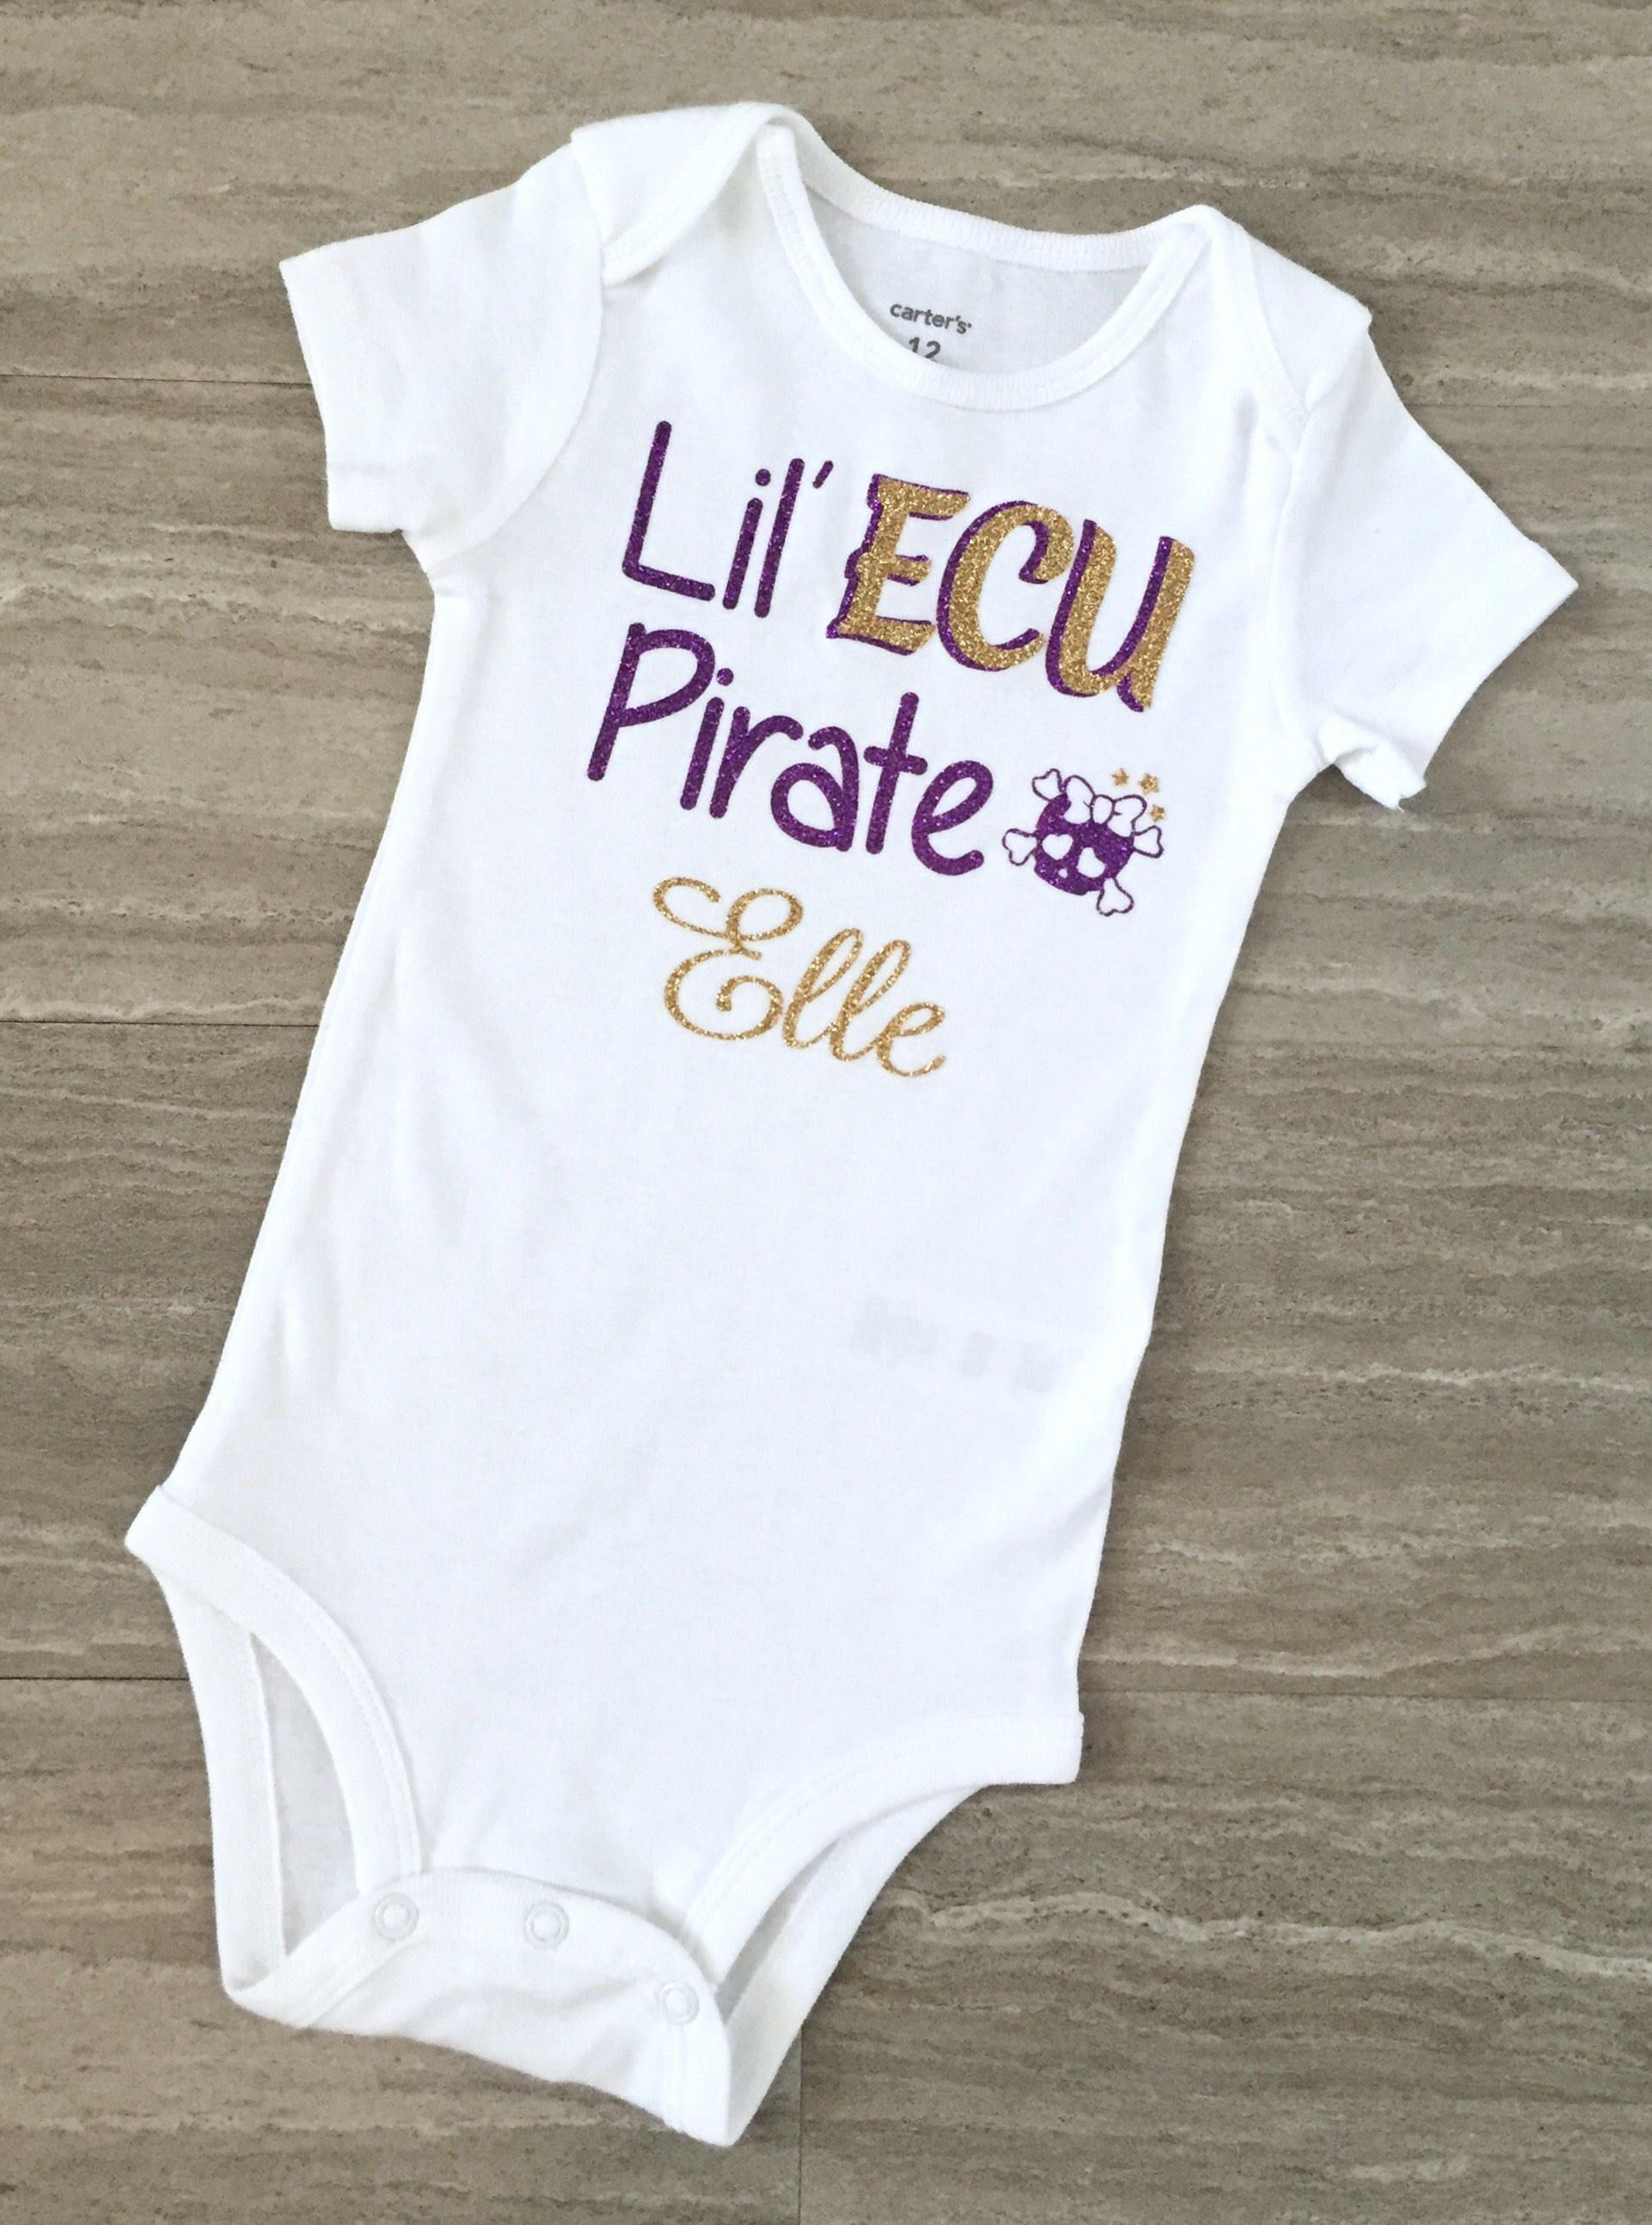 Ecu Baby Clothes Newest and Cutest Baby Clothing Collection by Due